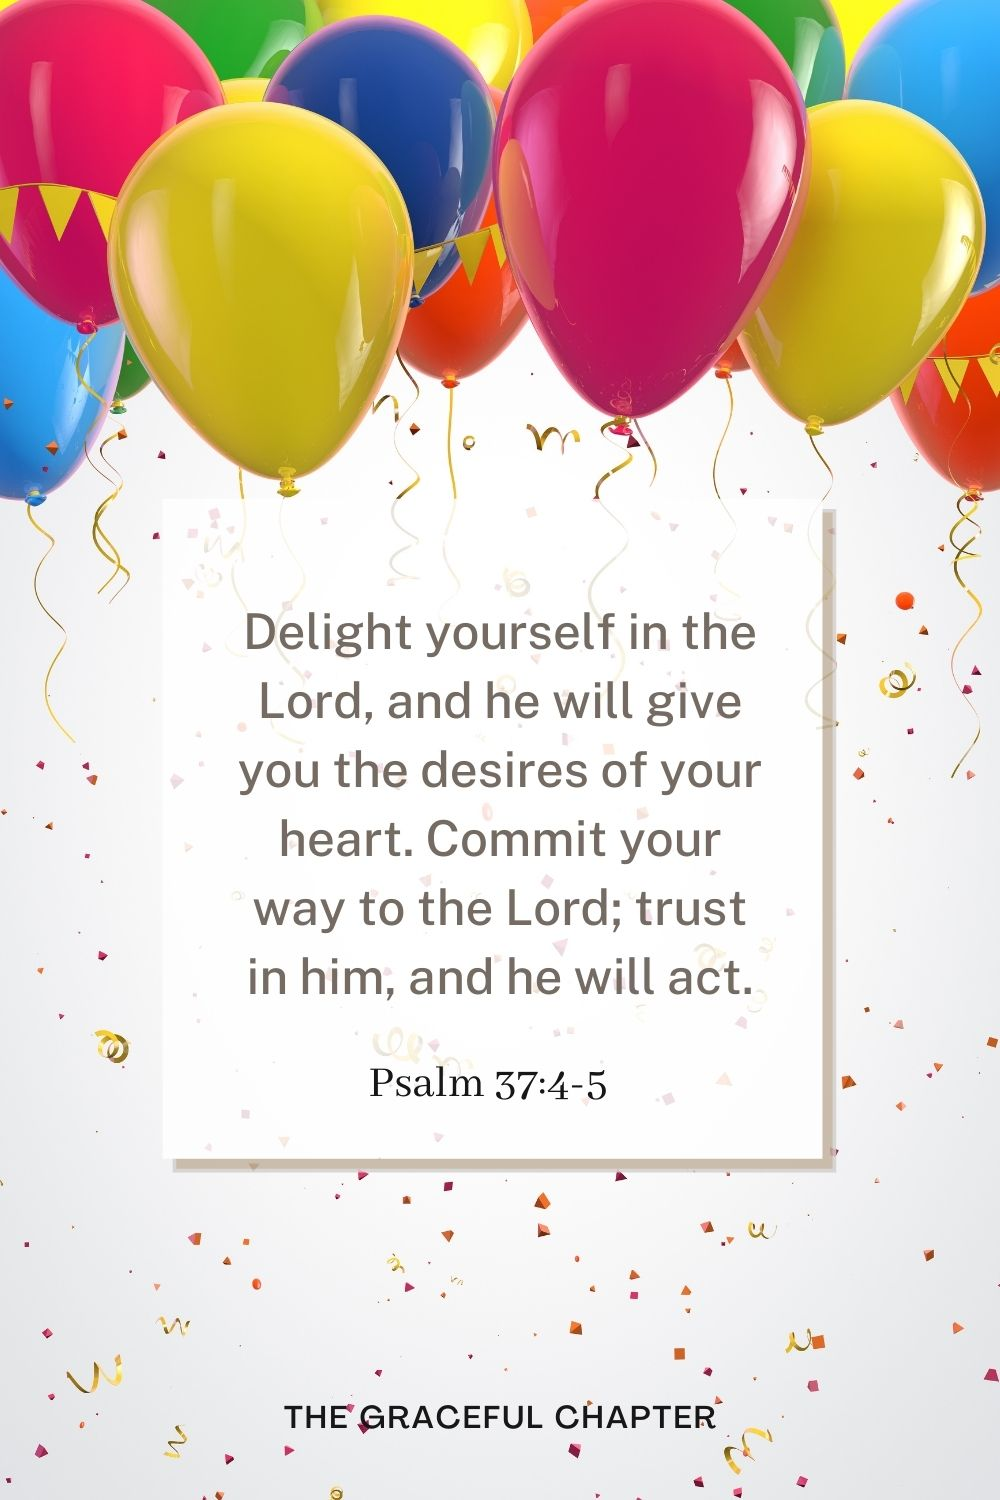 Delight yourself in the Lord, and he will give you the desires of your heart. Commit your way to the Lord; trust in him, and he will act. Psalm 37:4-5